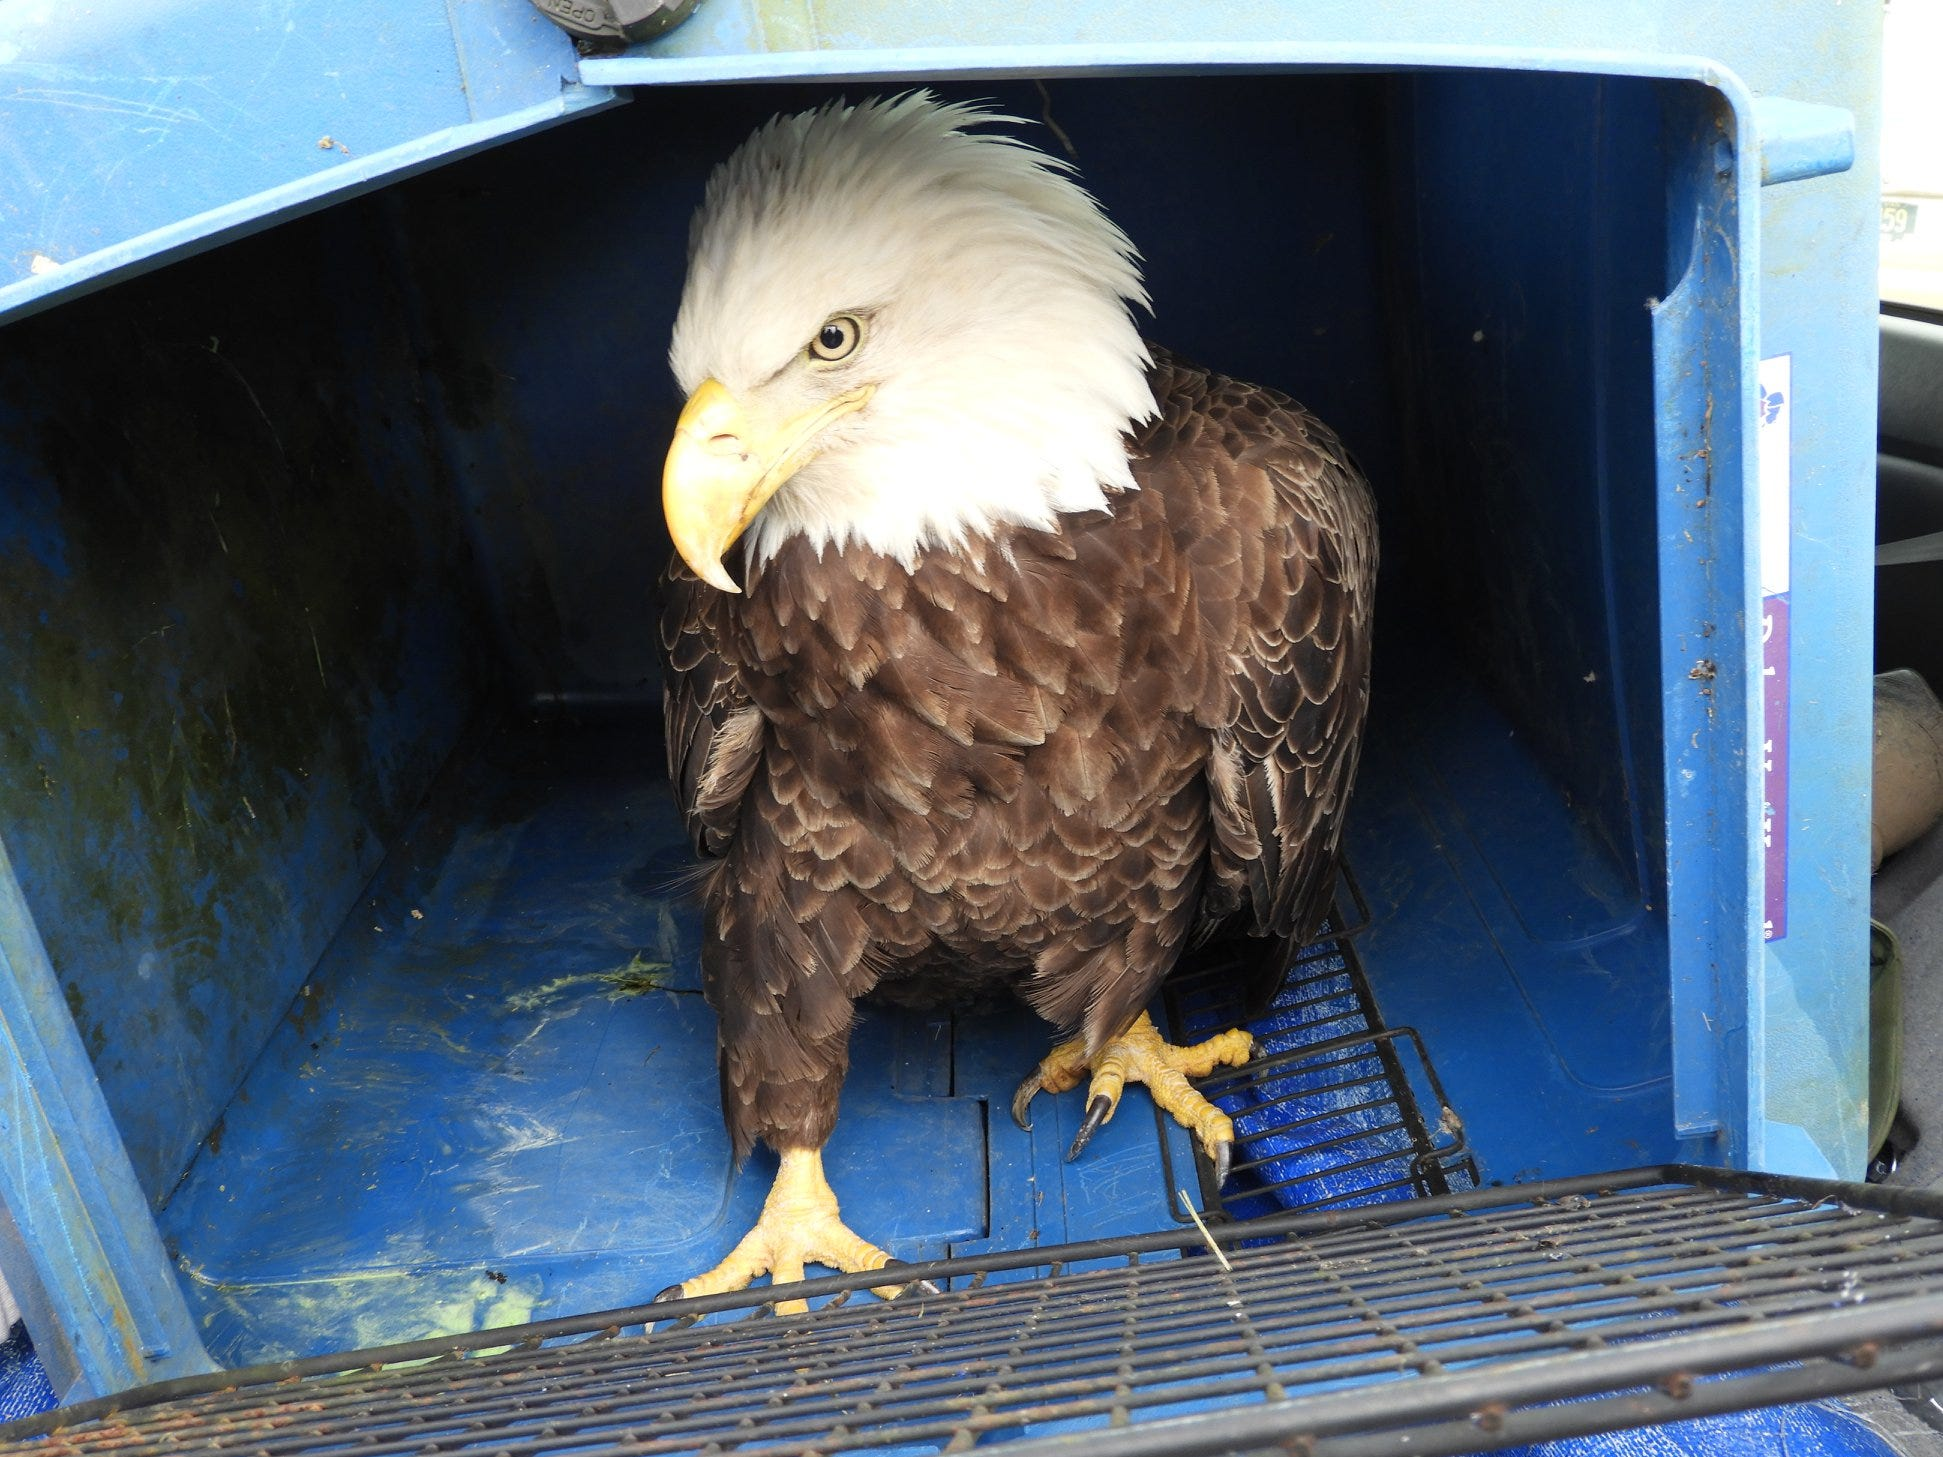 Despite the efforts of passersby to help this struggling bald eagle, it died from high levels of lead in its blood.